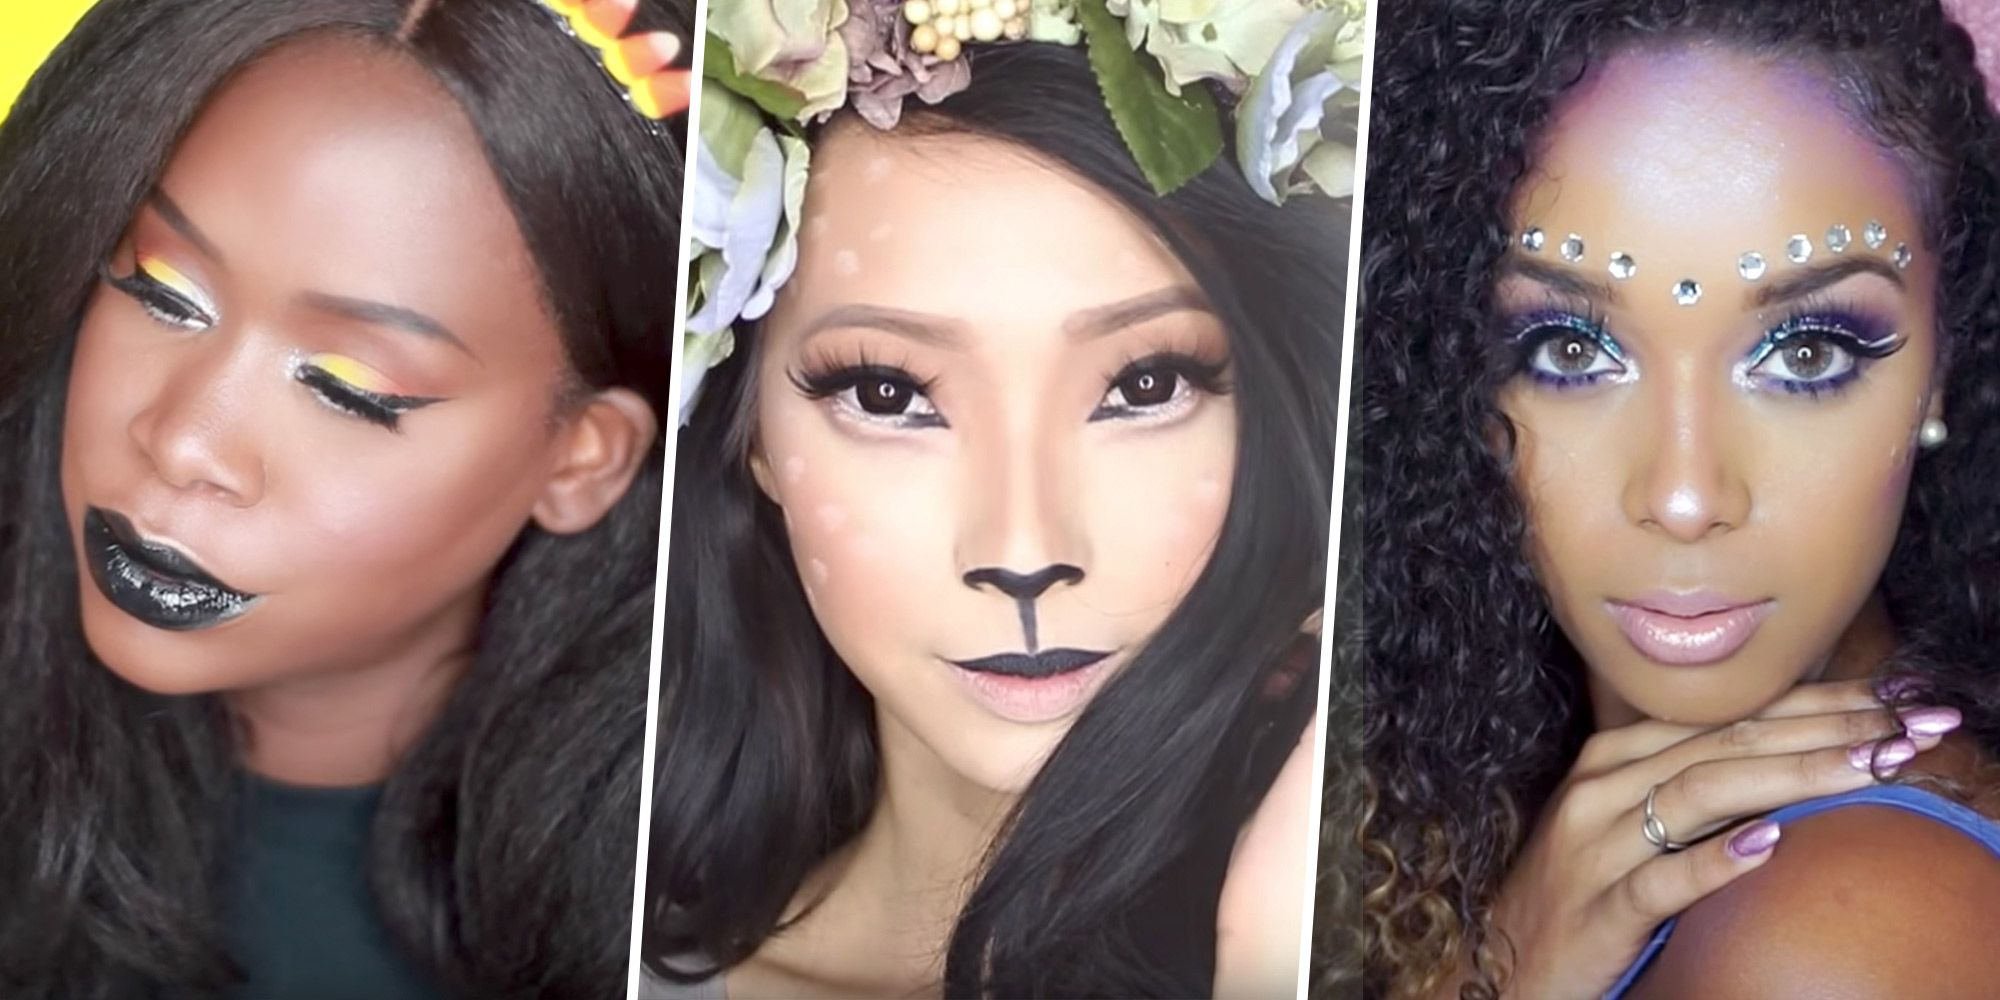 Halloween Ideas 2019 Makeup.Best Halloween Ideas For 2019 Halloween Costumes Makeup